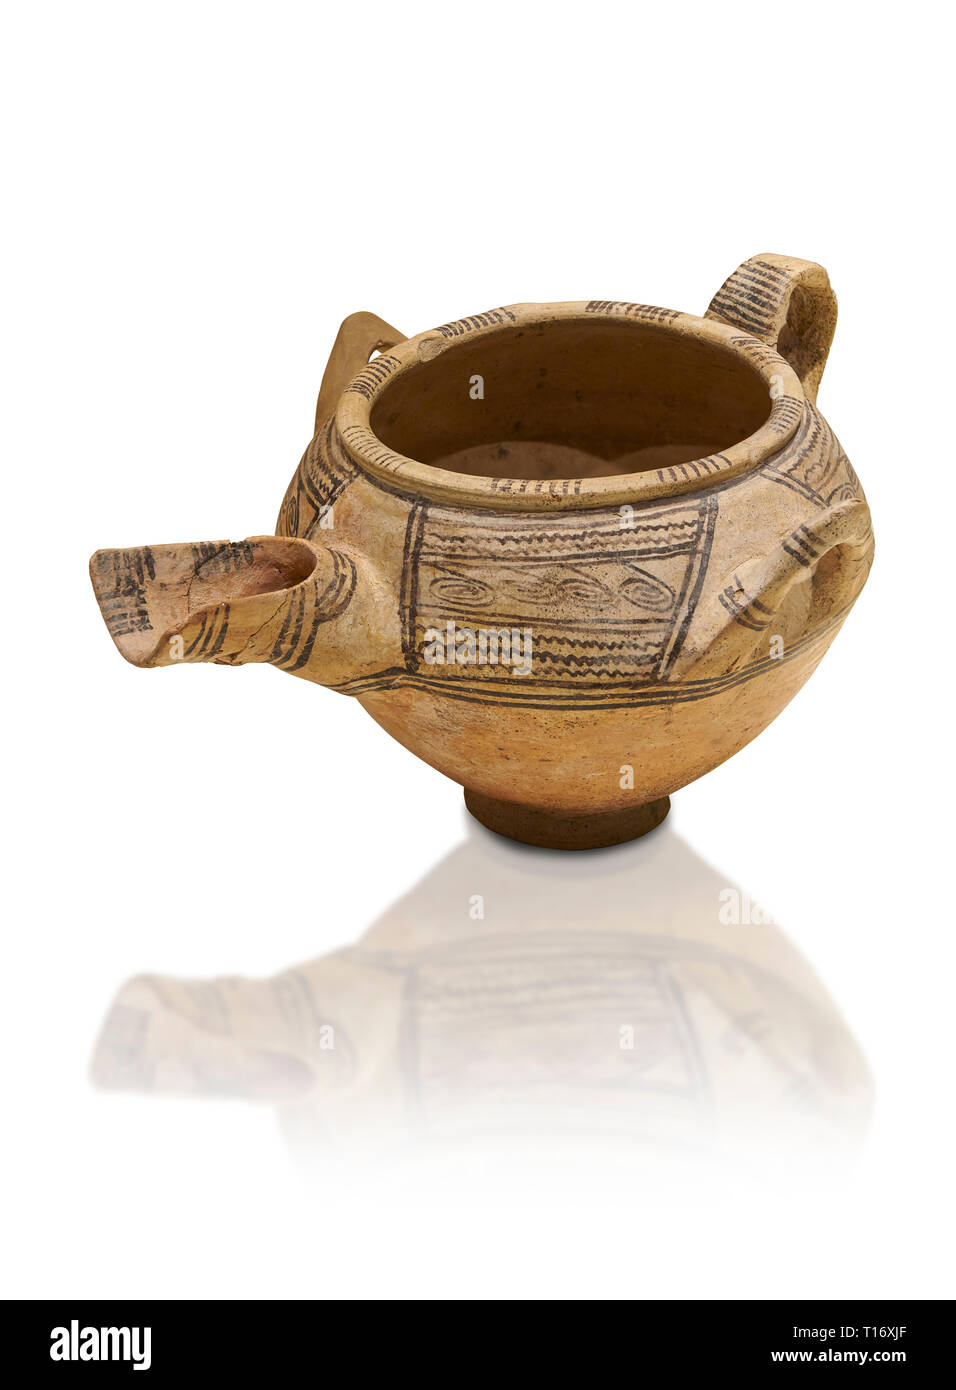 Decorated terra cotta tree handled vessel with a spout - 19th to 17th century BC - Kültepe Kanesh - Museum of Anatolian Civilisations, Ankara, Turkey. - Stock Image